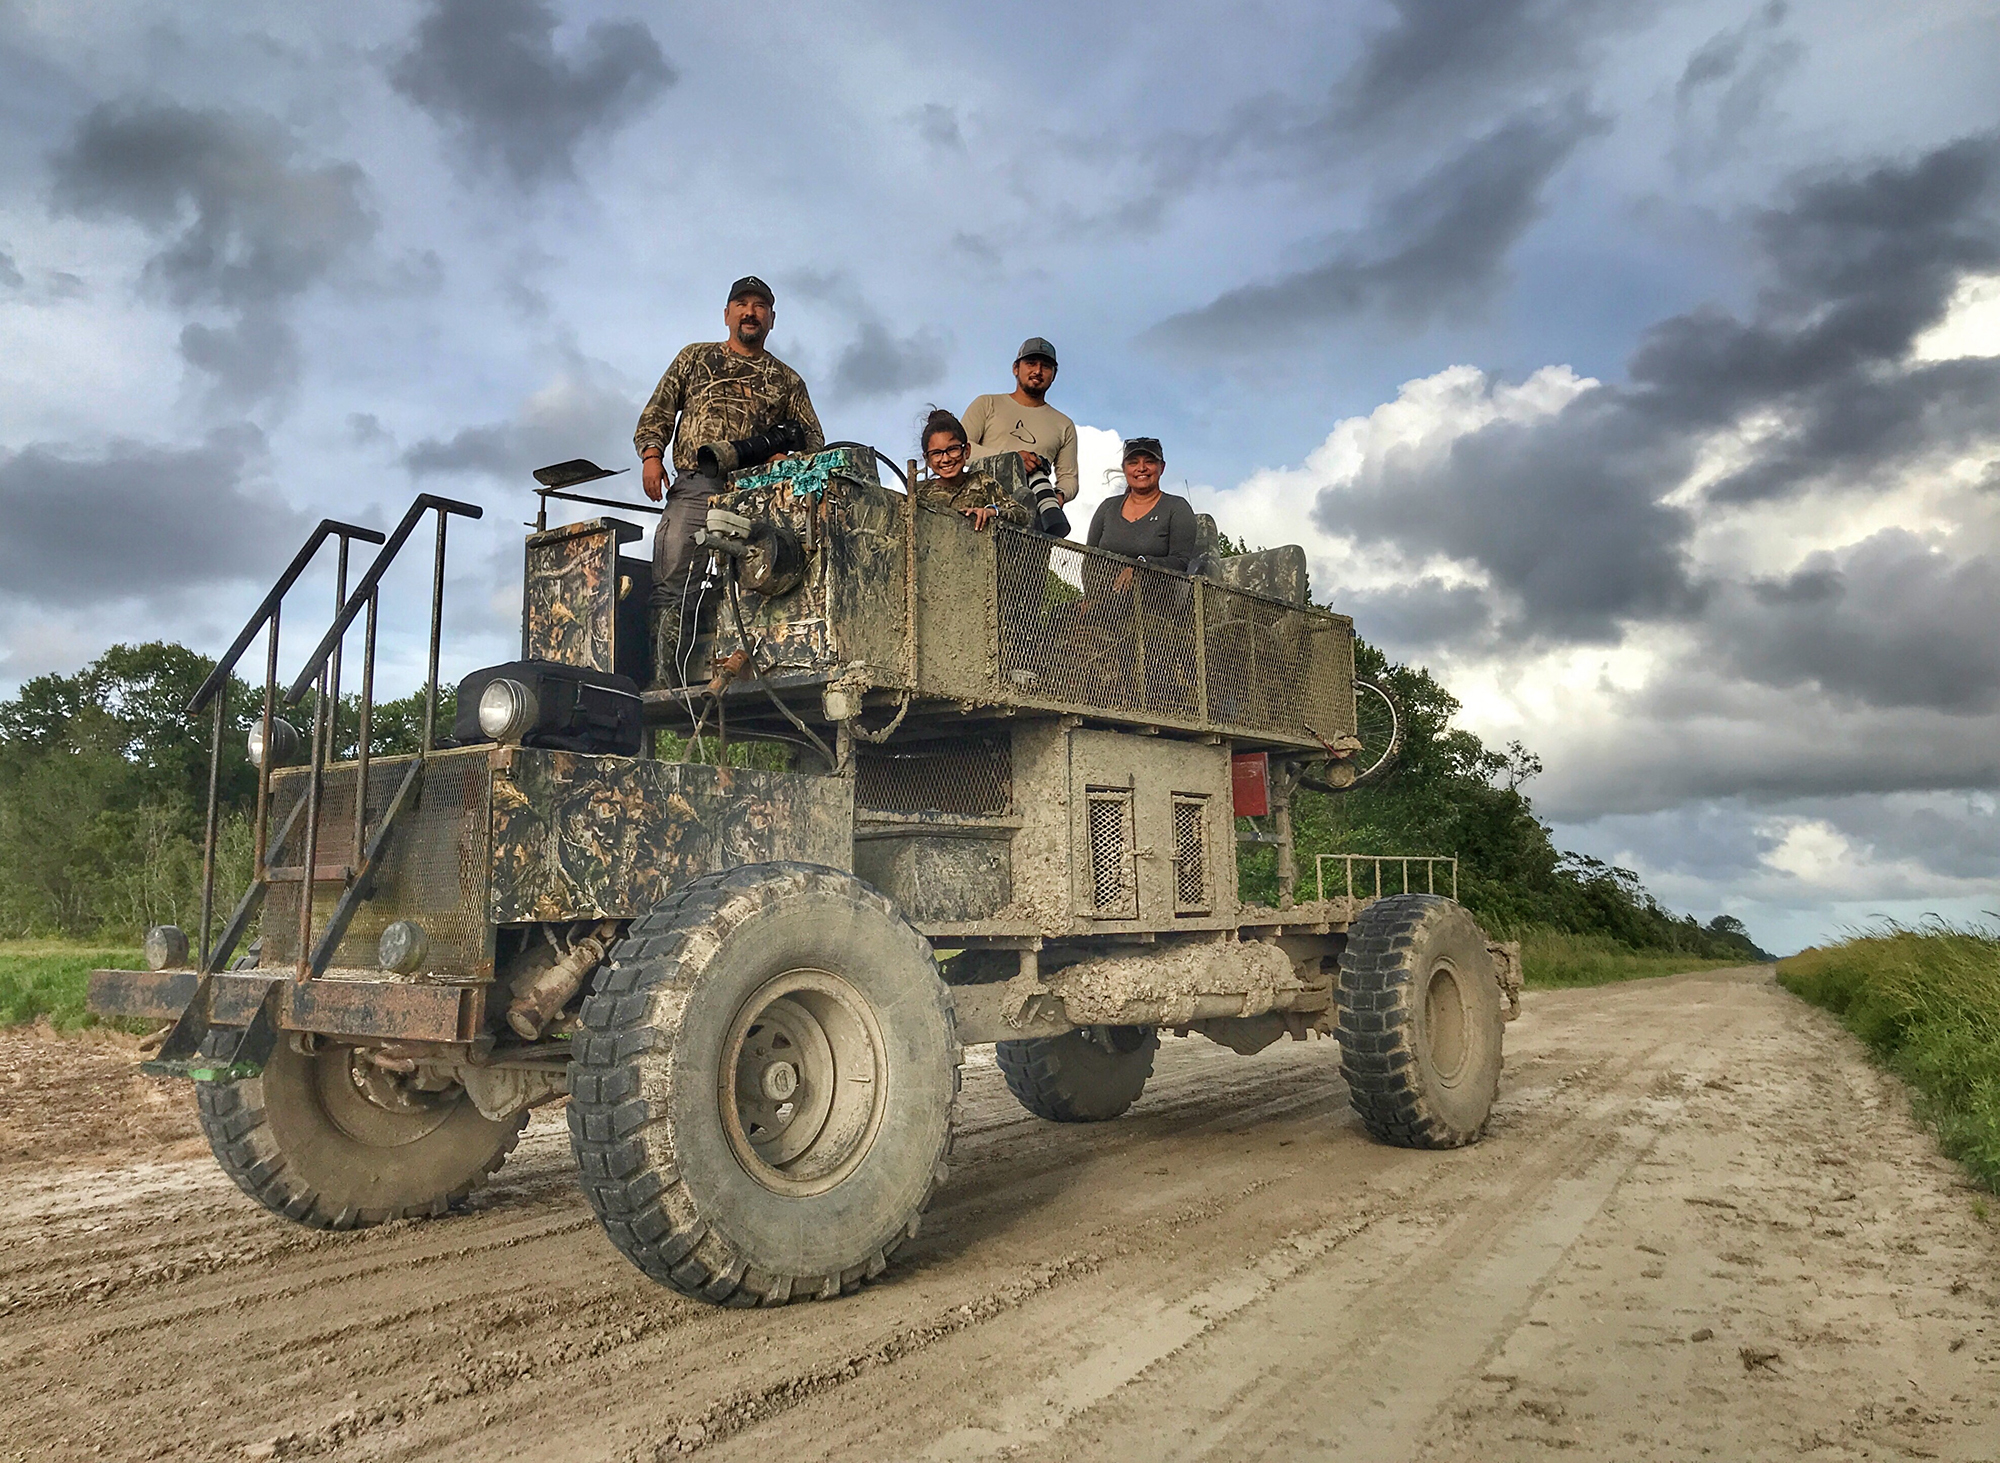 The SDM crew on the swamp buggy.